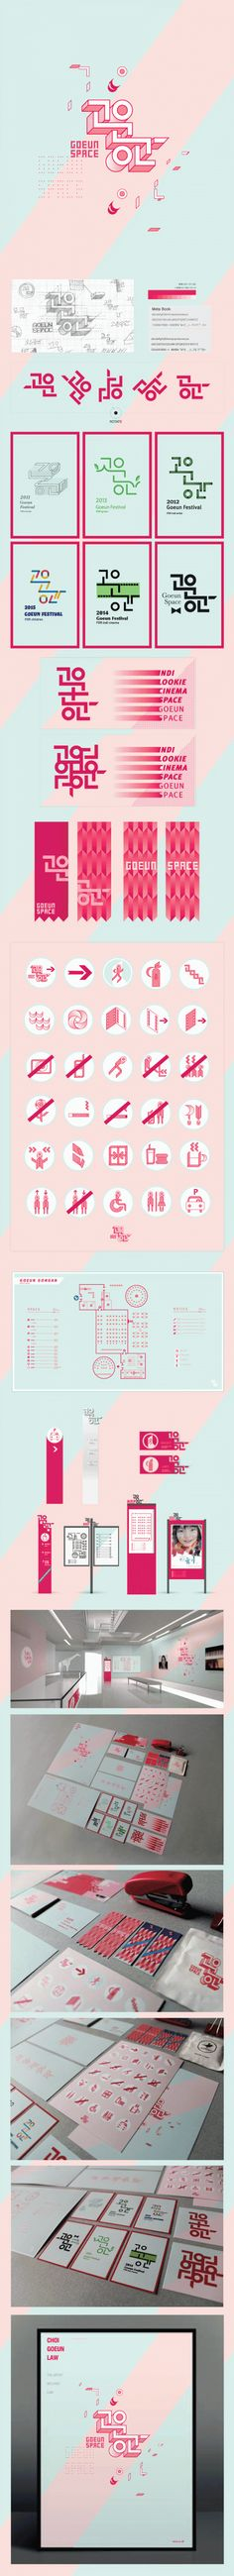 Goeun Space by Y8N , via Behance - http://www.behance.net/gallery/Goeun-Space/12248999